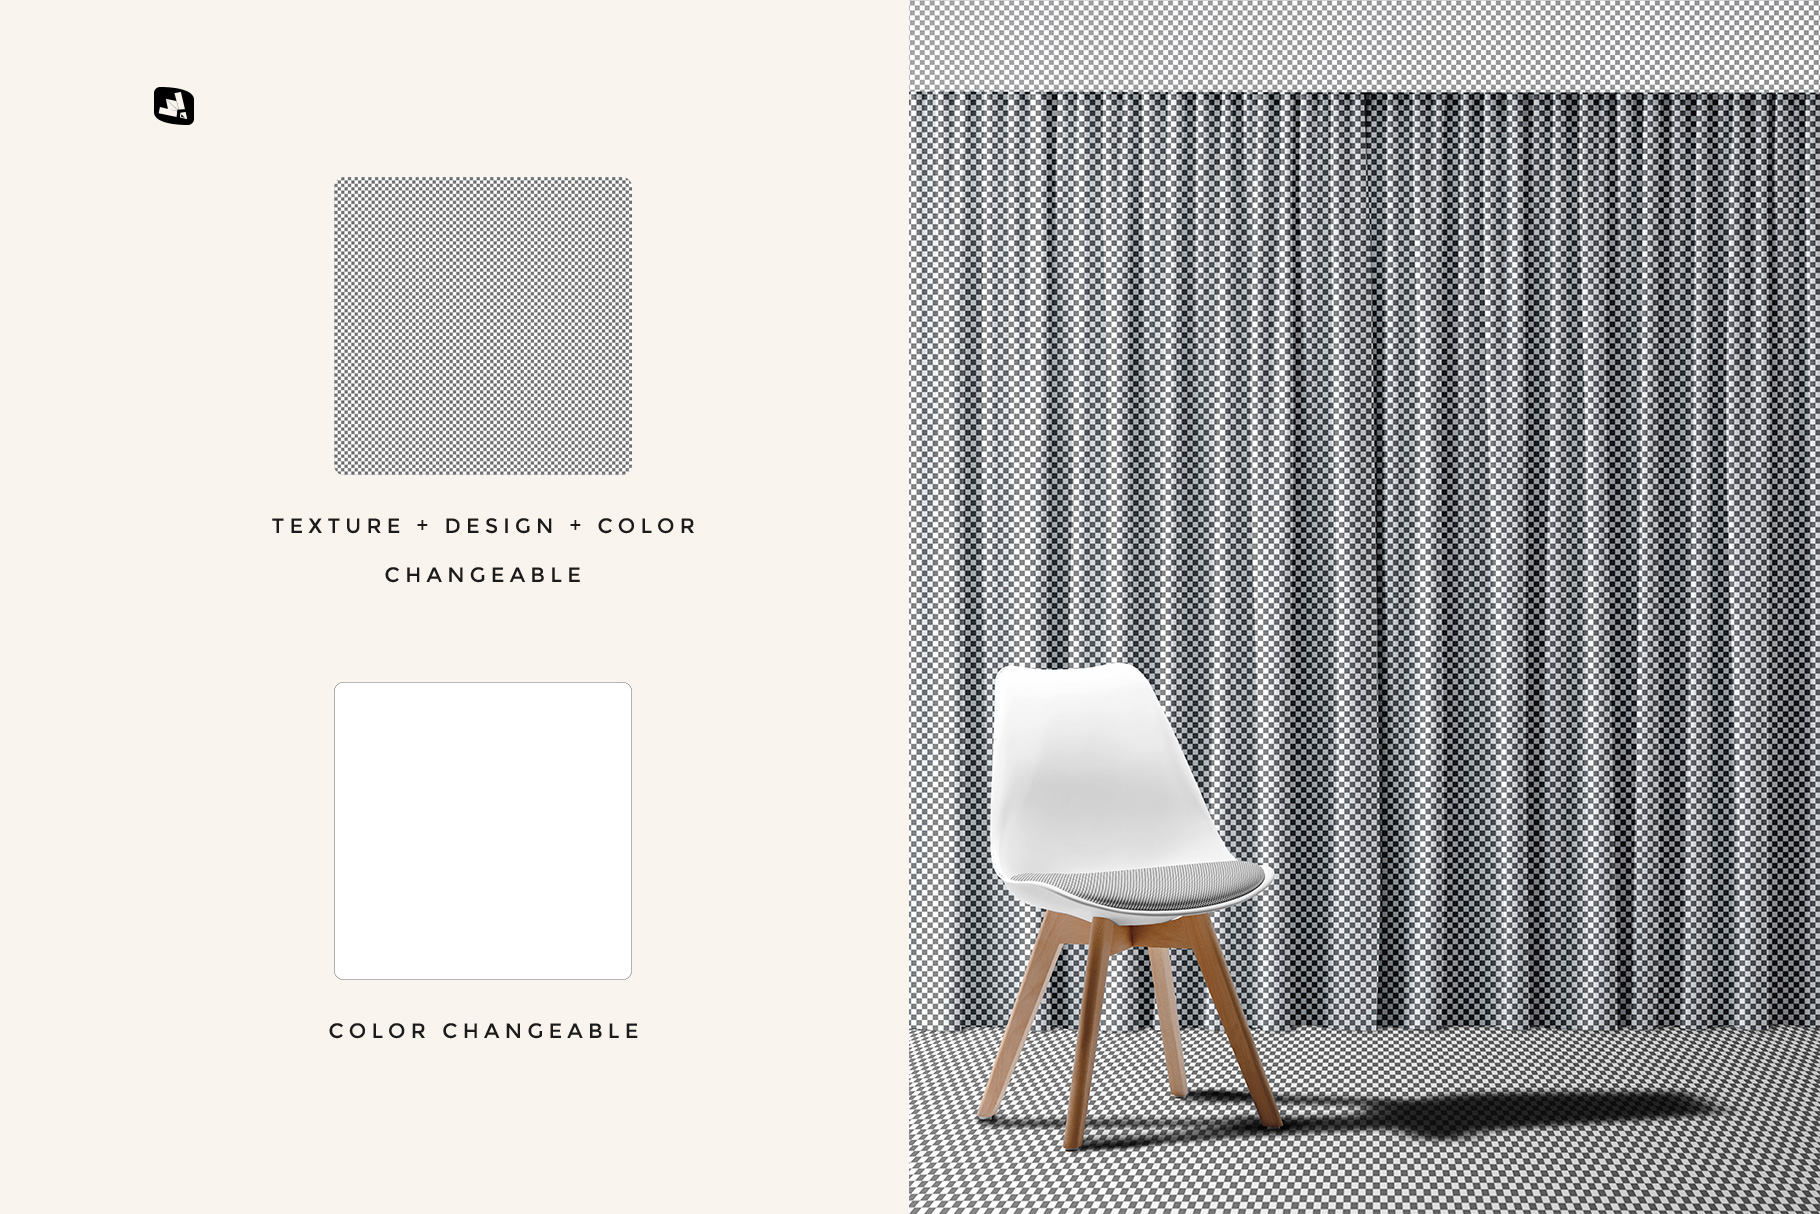 editability of the long curtain with chair mockup